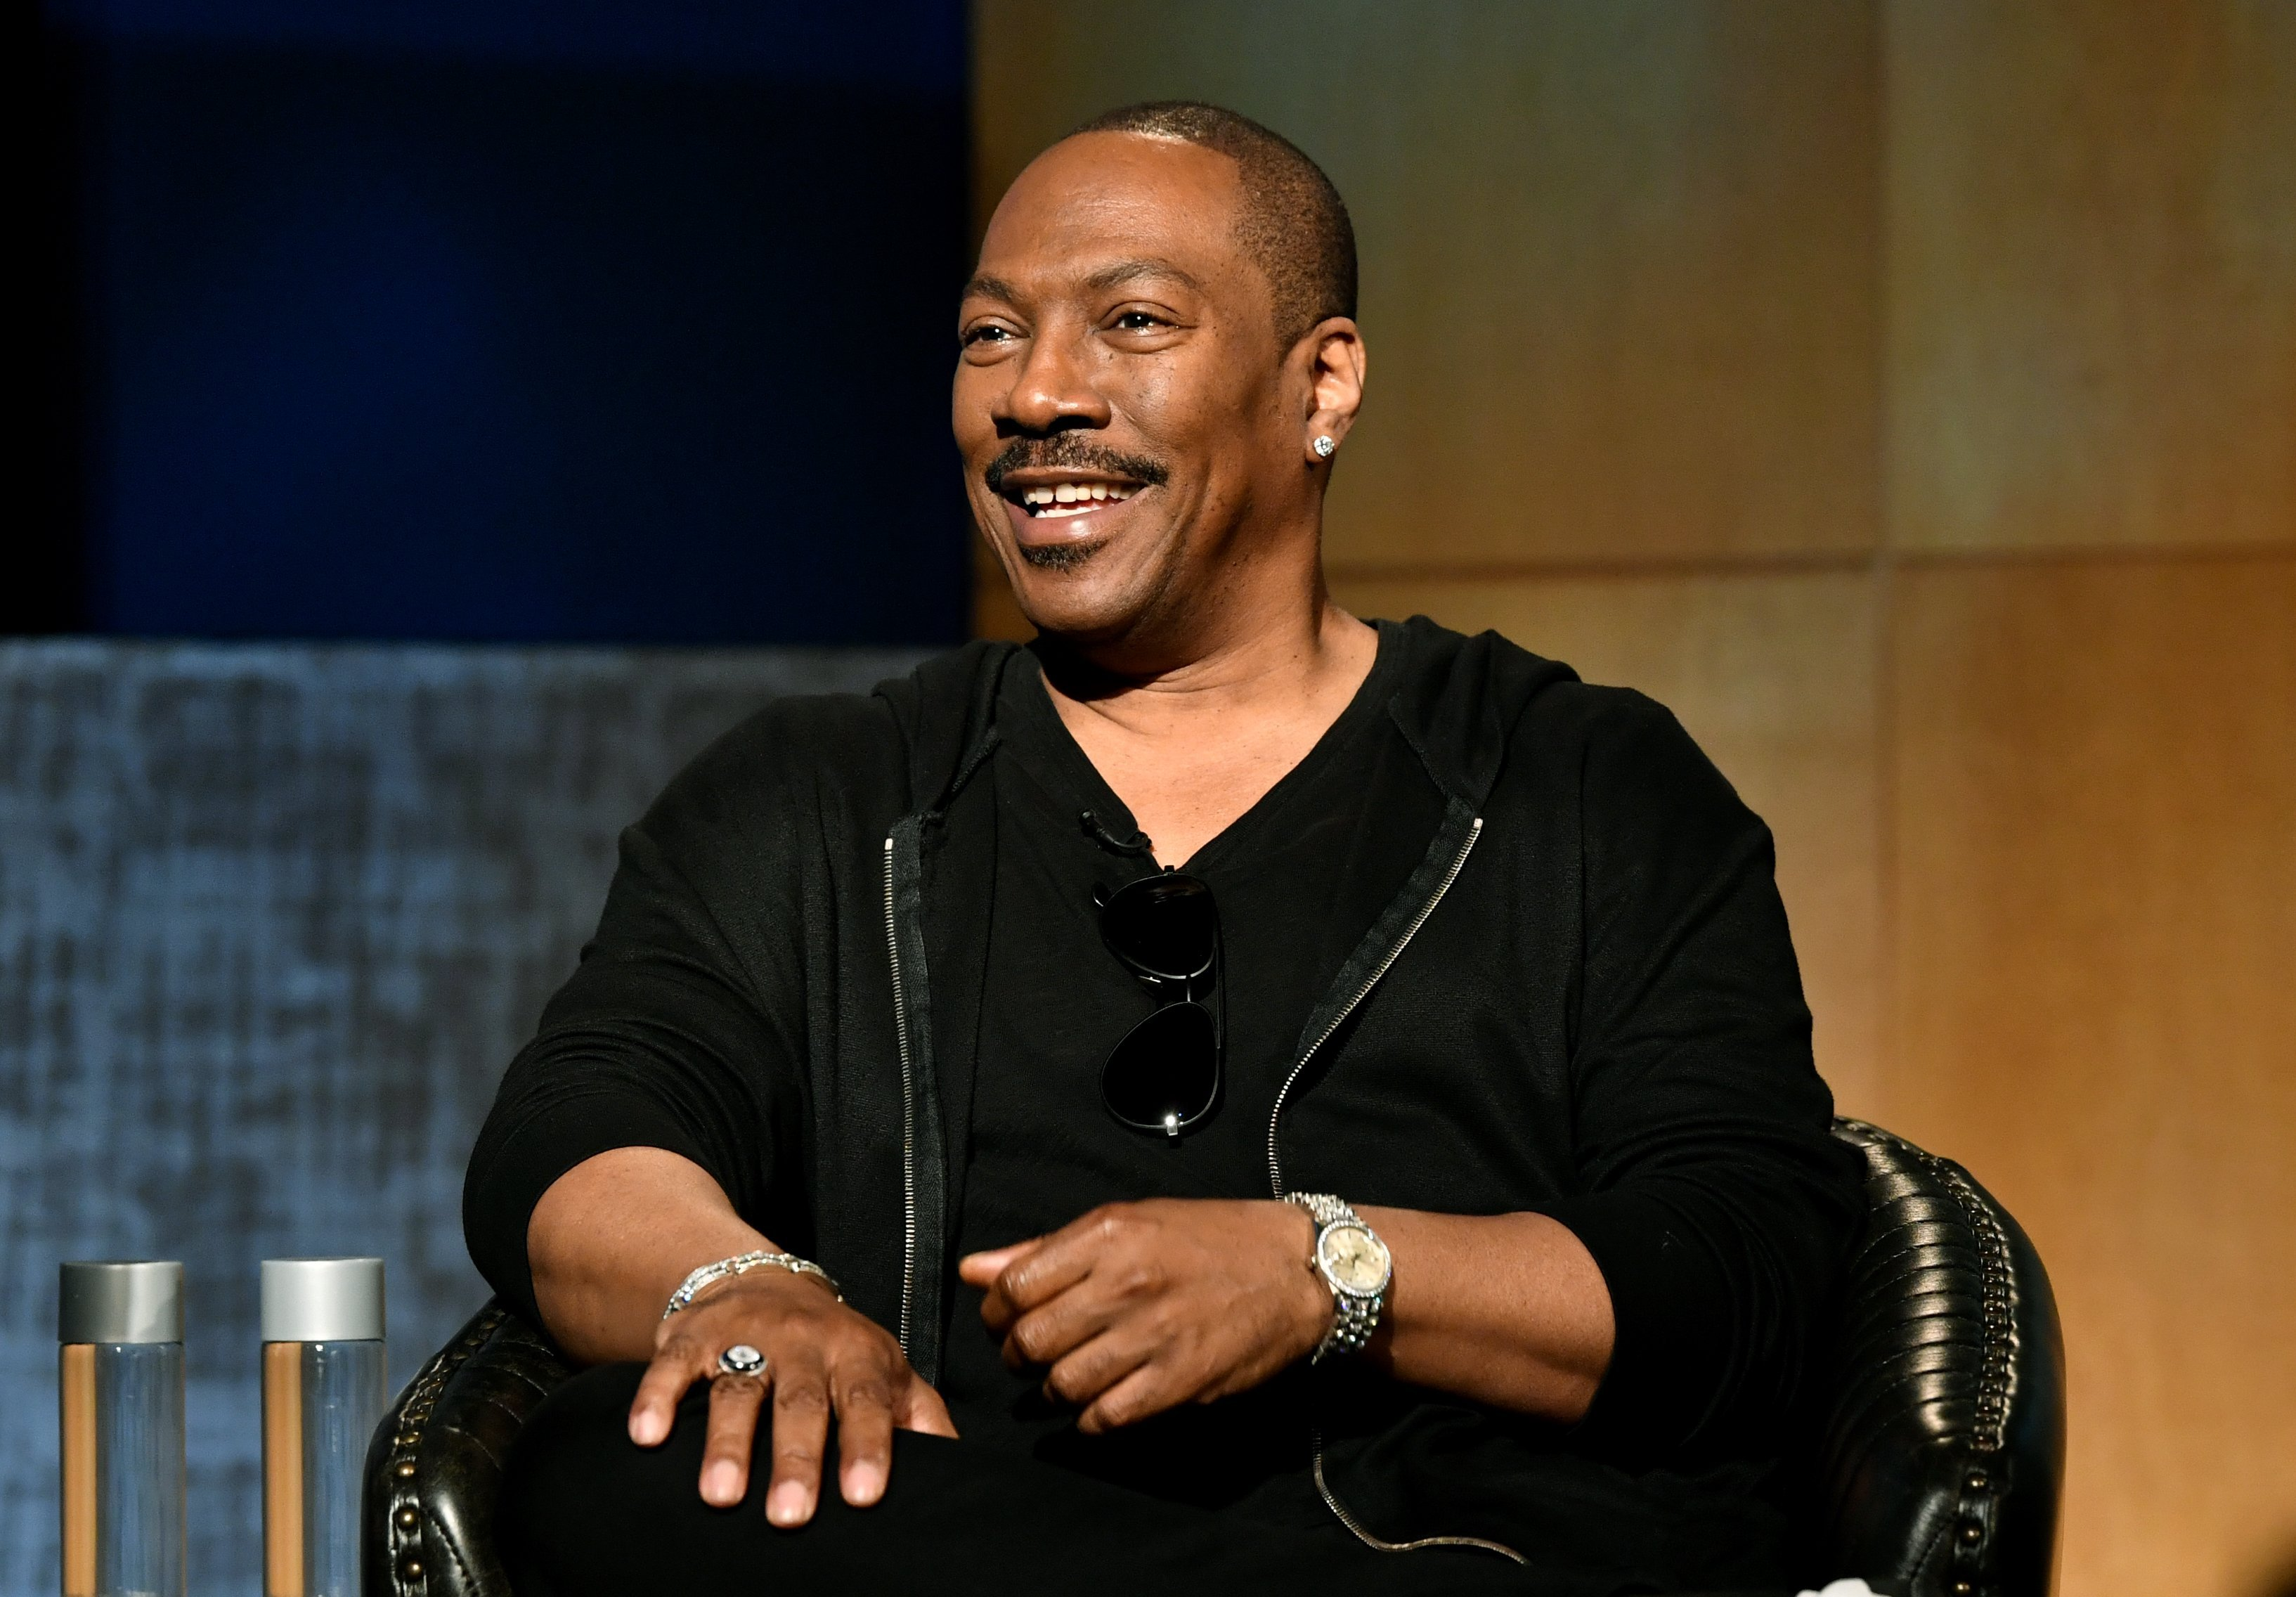 """Eddie Murphy speaking onstage during the LA Tastemaker event for """"Comedians in Cars"""" at The Paley Center for Media on July 17, 2019 in Beverly Hills City 